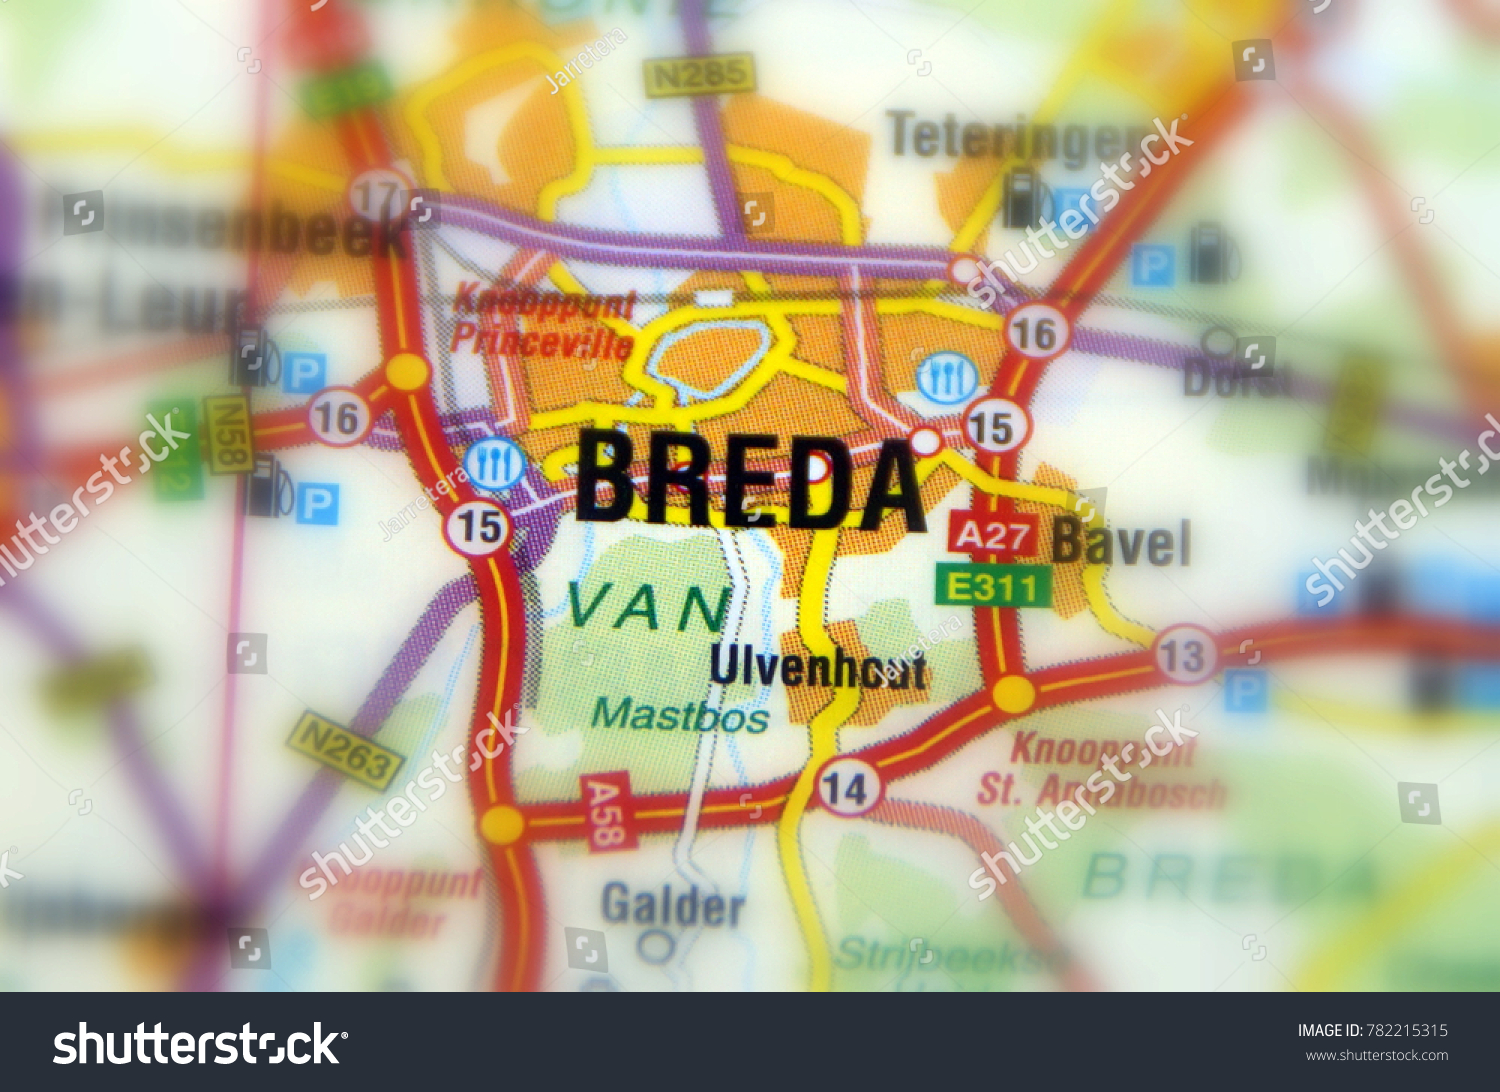 Netherlands Map Of Provinces%0A Breda Netherlands On Map Breda is a city in the southern part of the  Netherlands located